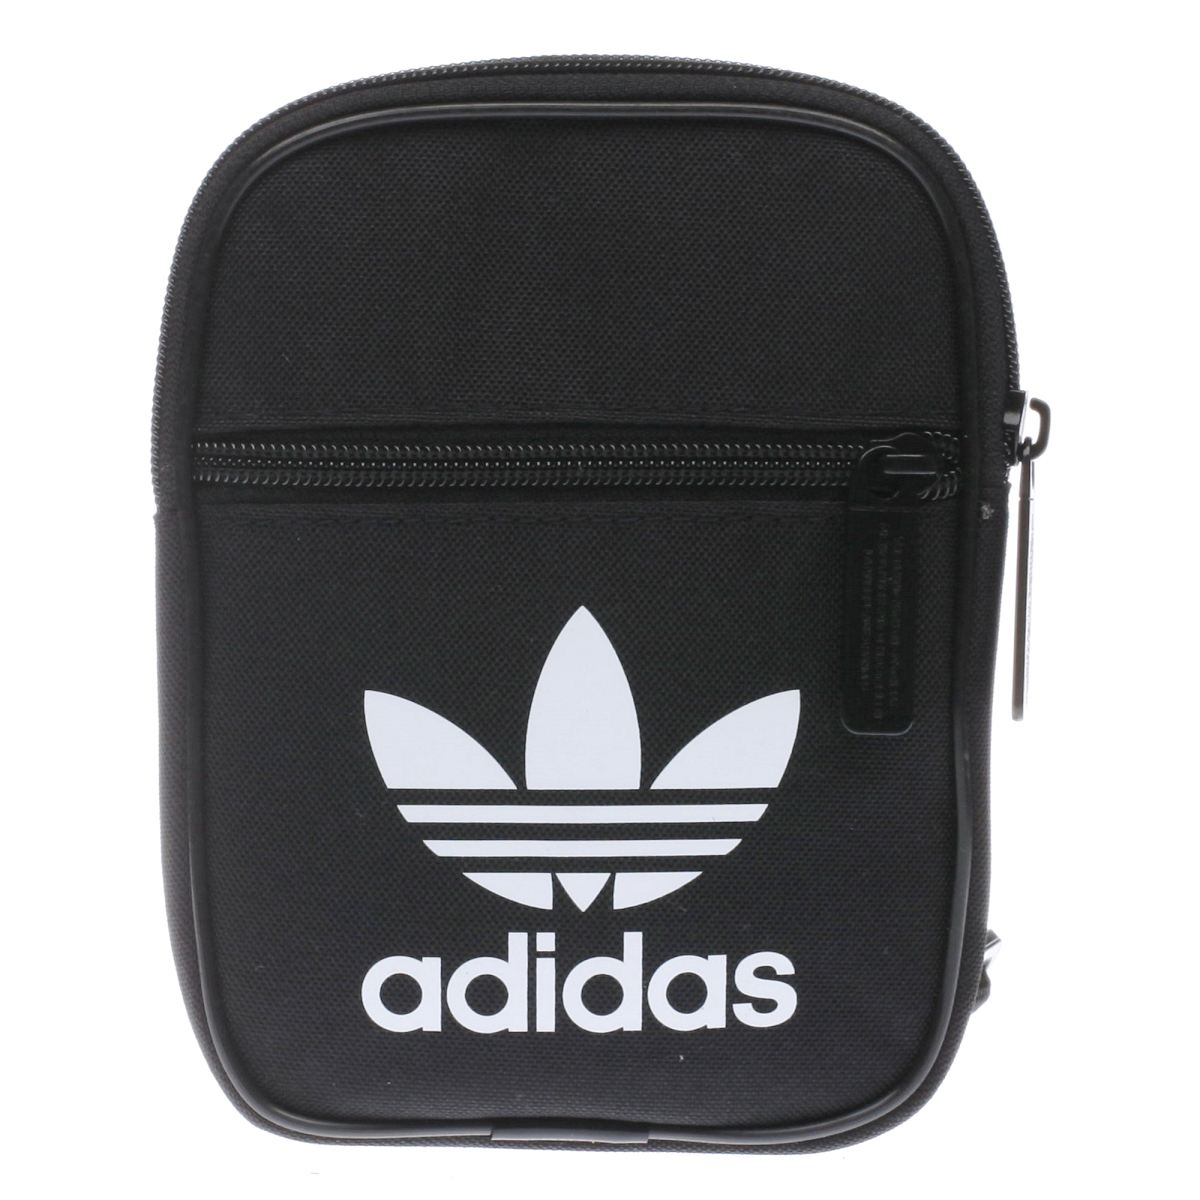 dfcdefe5920 Buy adidas shoulder bag mens   OFF46% Discounted